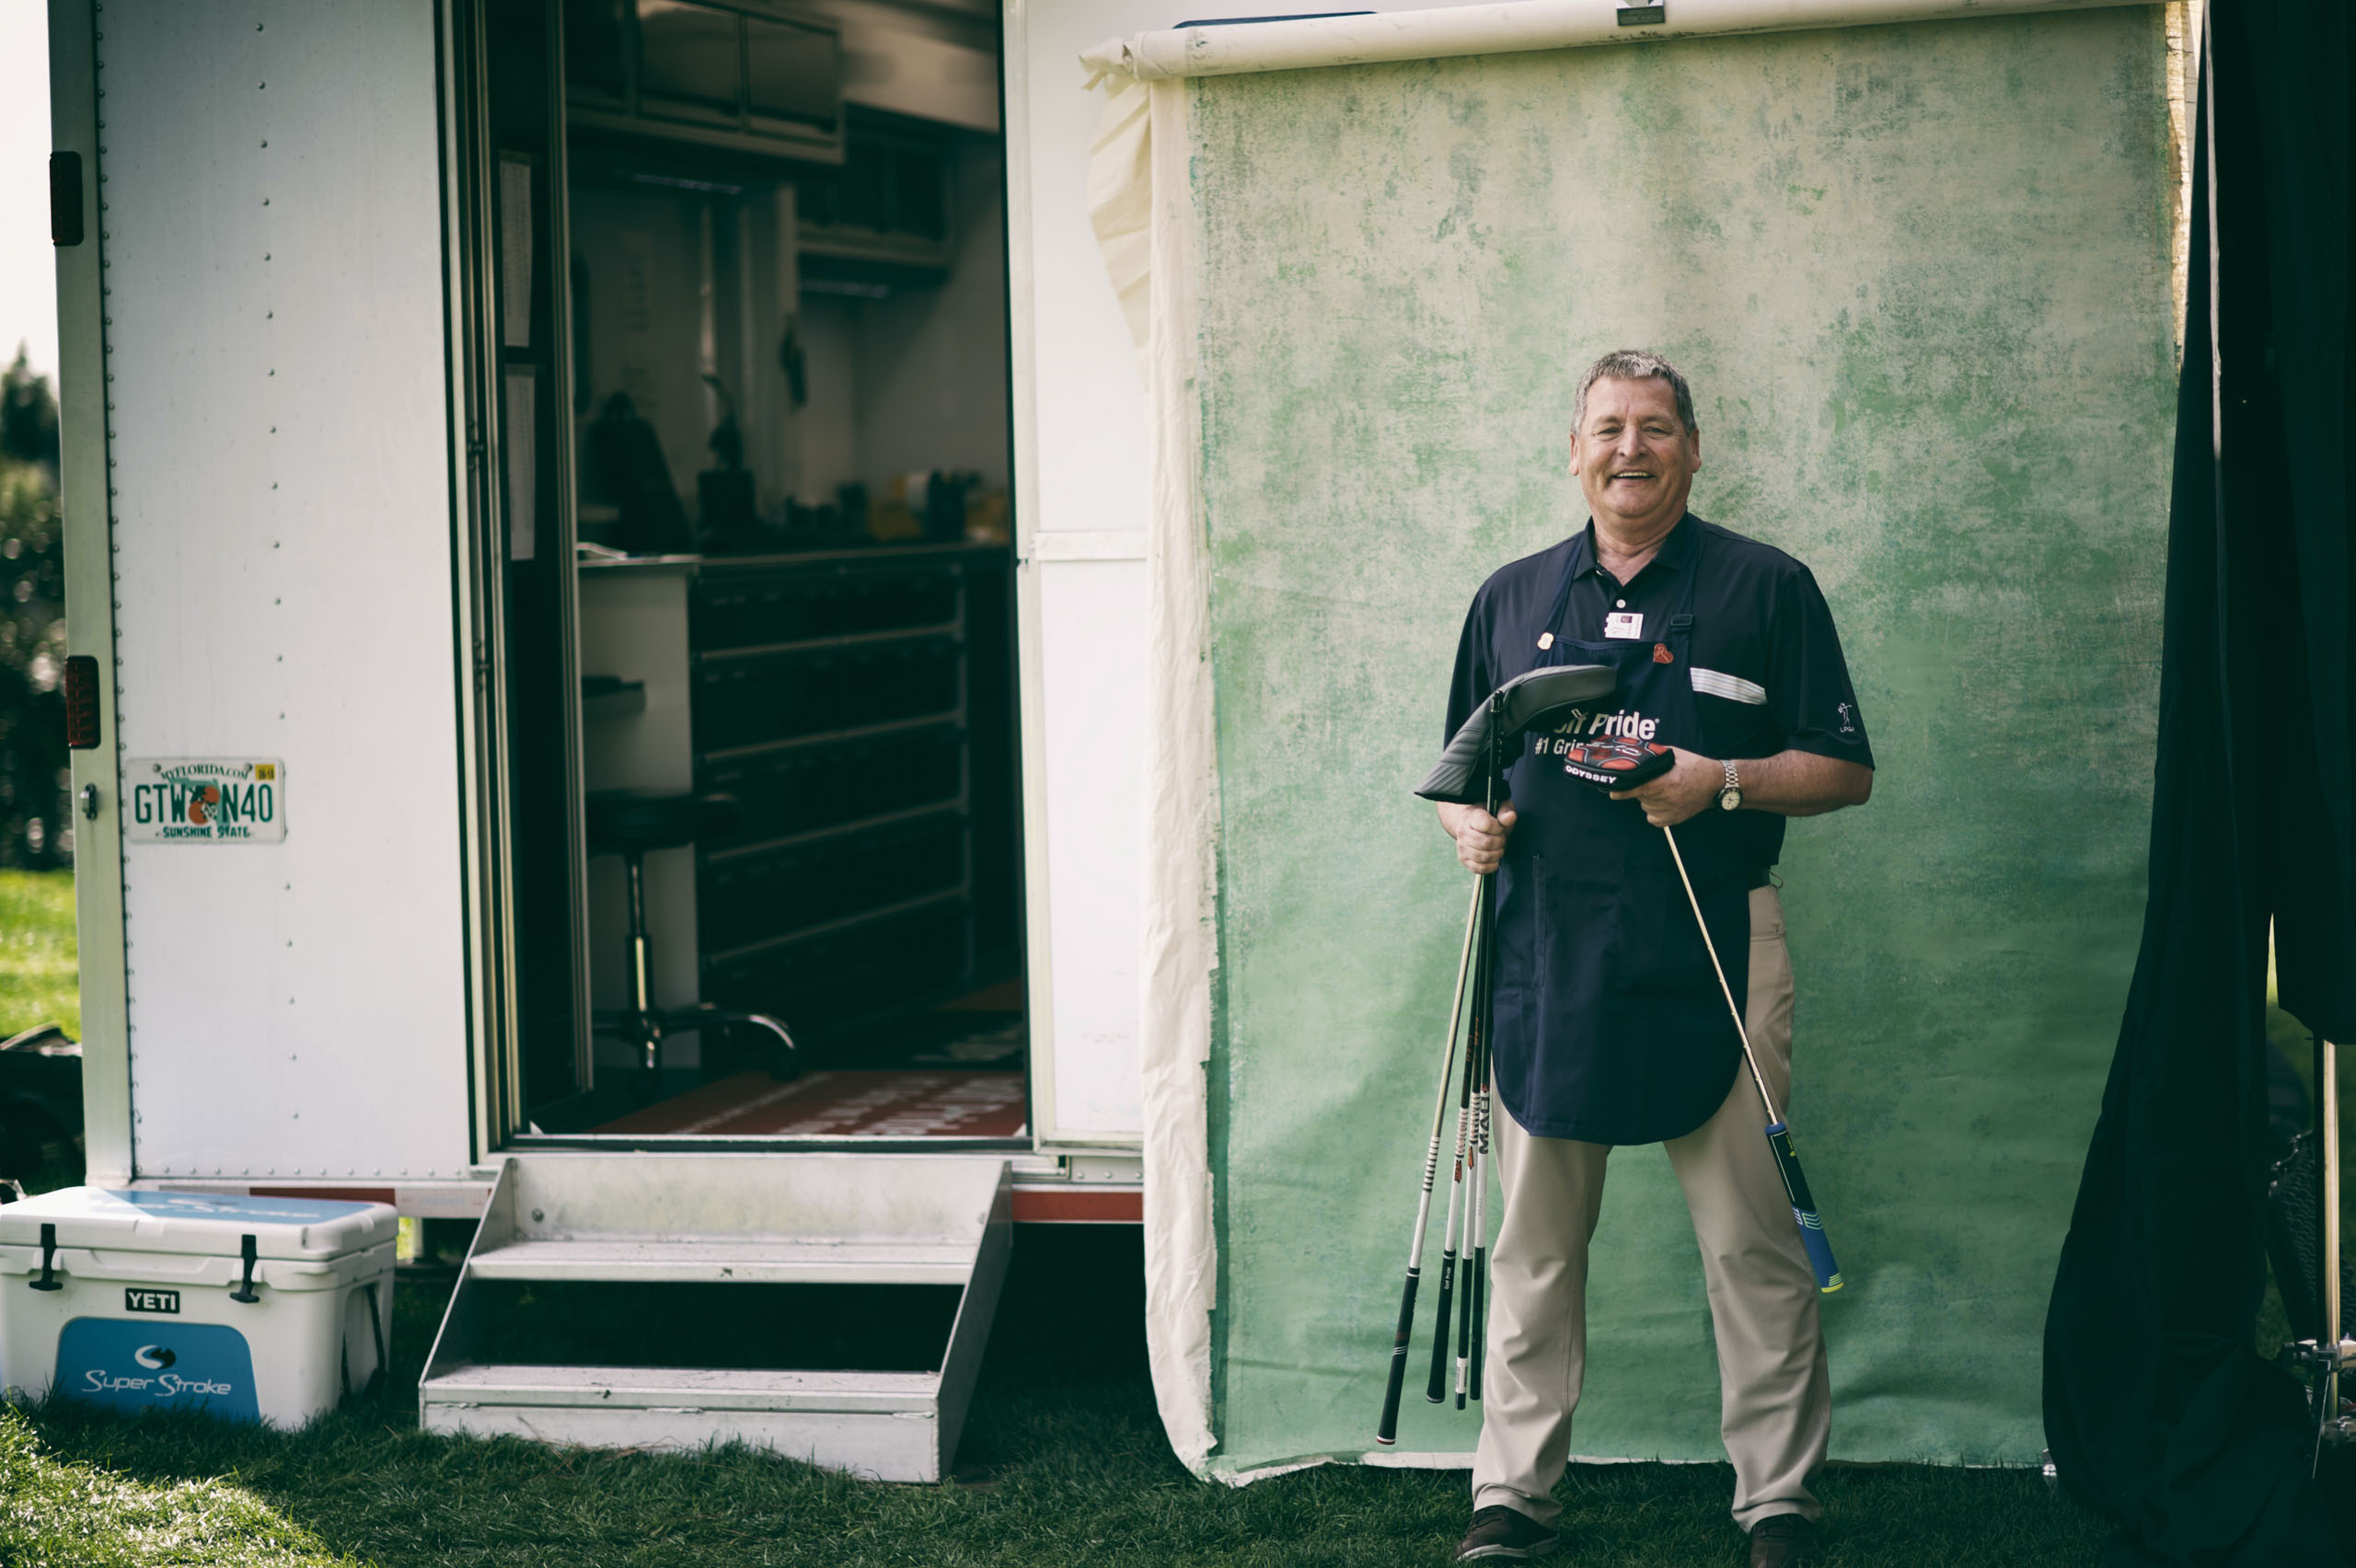 Gruff but good-hearted, Paul Boehmer has allowed LPGA players to turn his ubiquitous trailer into an impromptu clubhouse. From candy jars decorated by players' daughters to a kind word after a tough round, the trailer is a happy place. Photo by Kohjiro Kinno